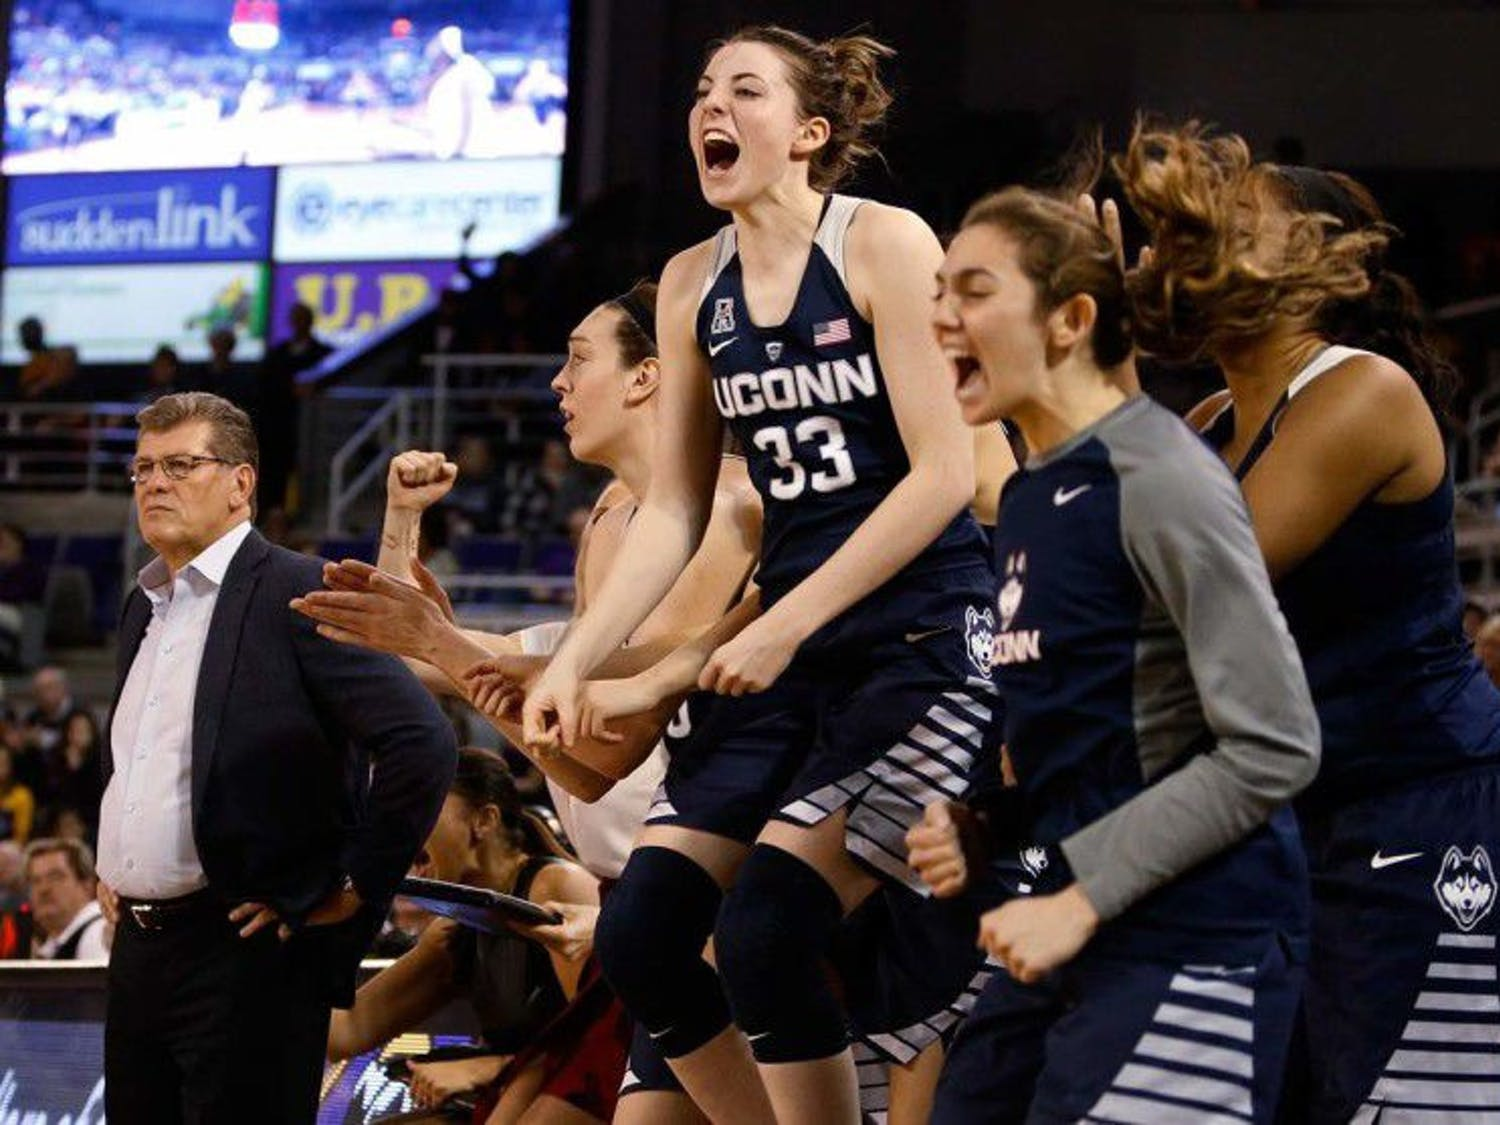 Coach GenoAuriemma and the UConn Huskies have won six of the last nine NCAA Women's Basketball Championships.